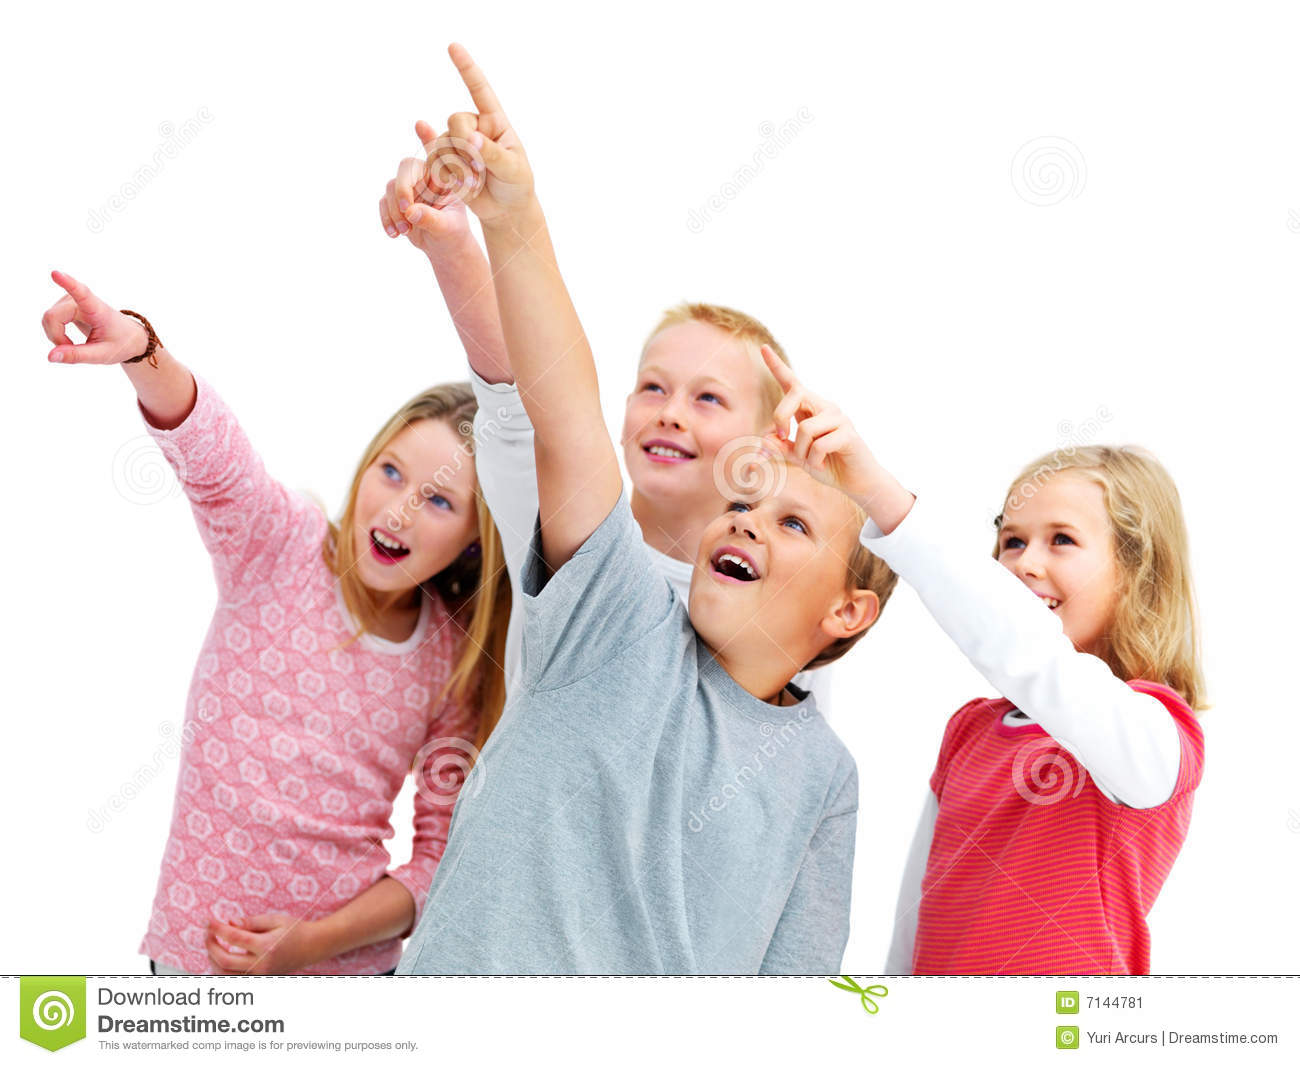 Stock Image: Wow look at that, kids pointing. Image: 7144781